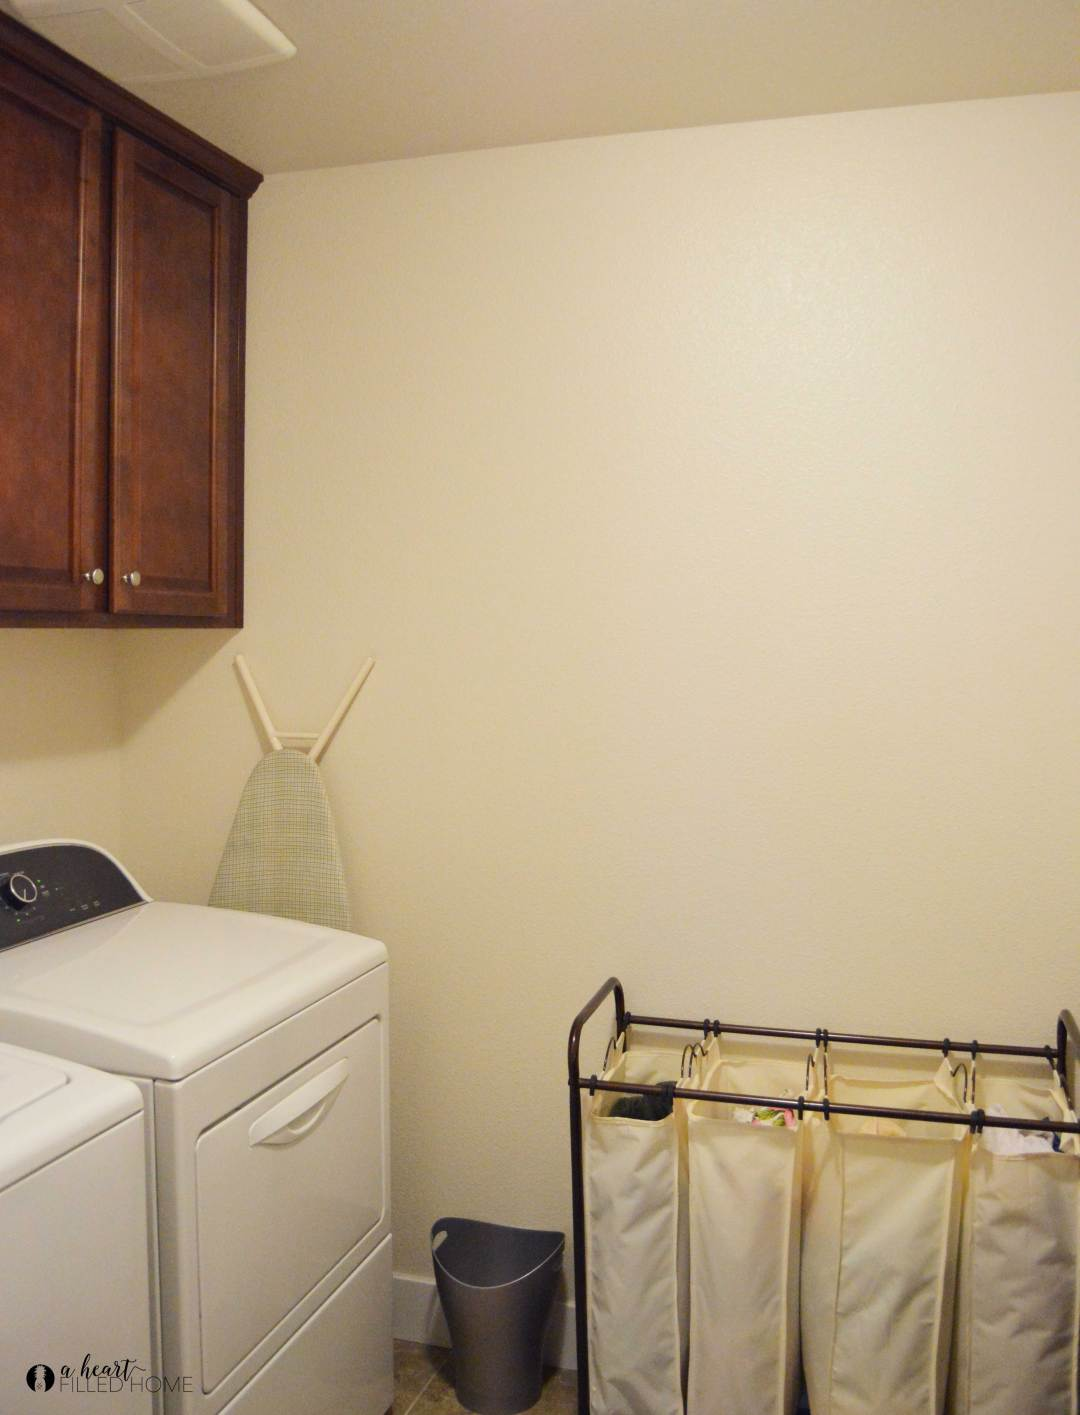 Plans for a budget friendly Farmhouse Laundry Room Makeover!.